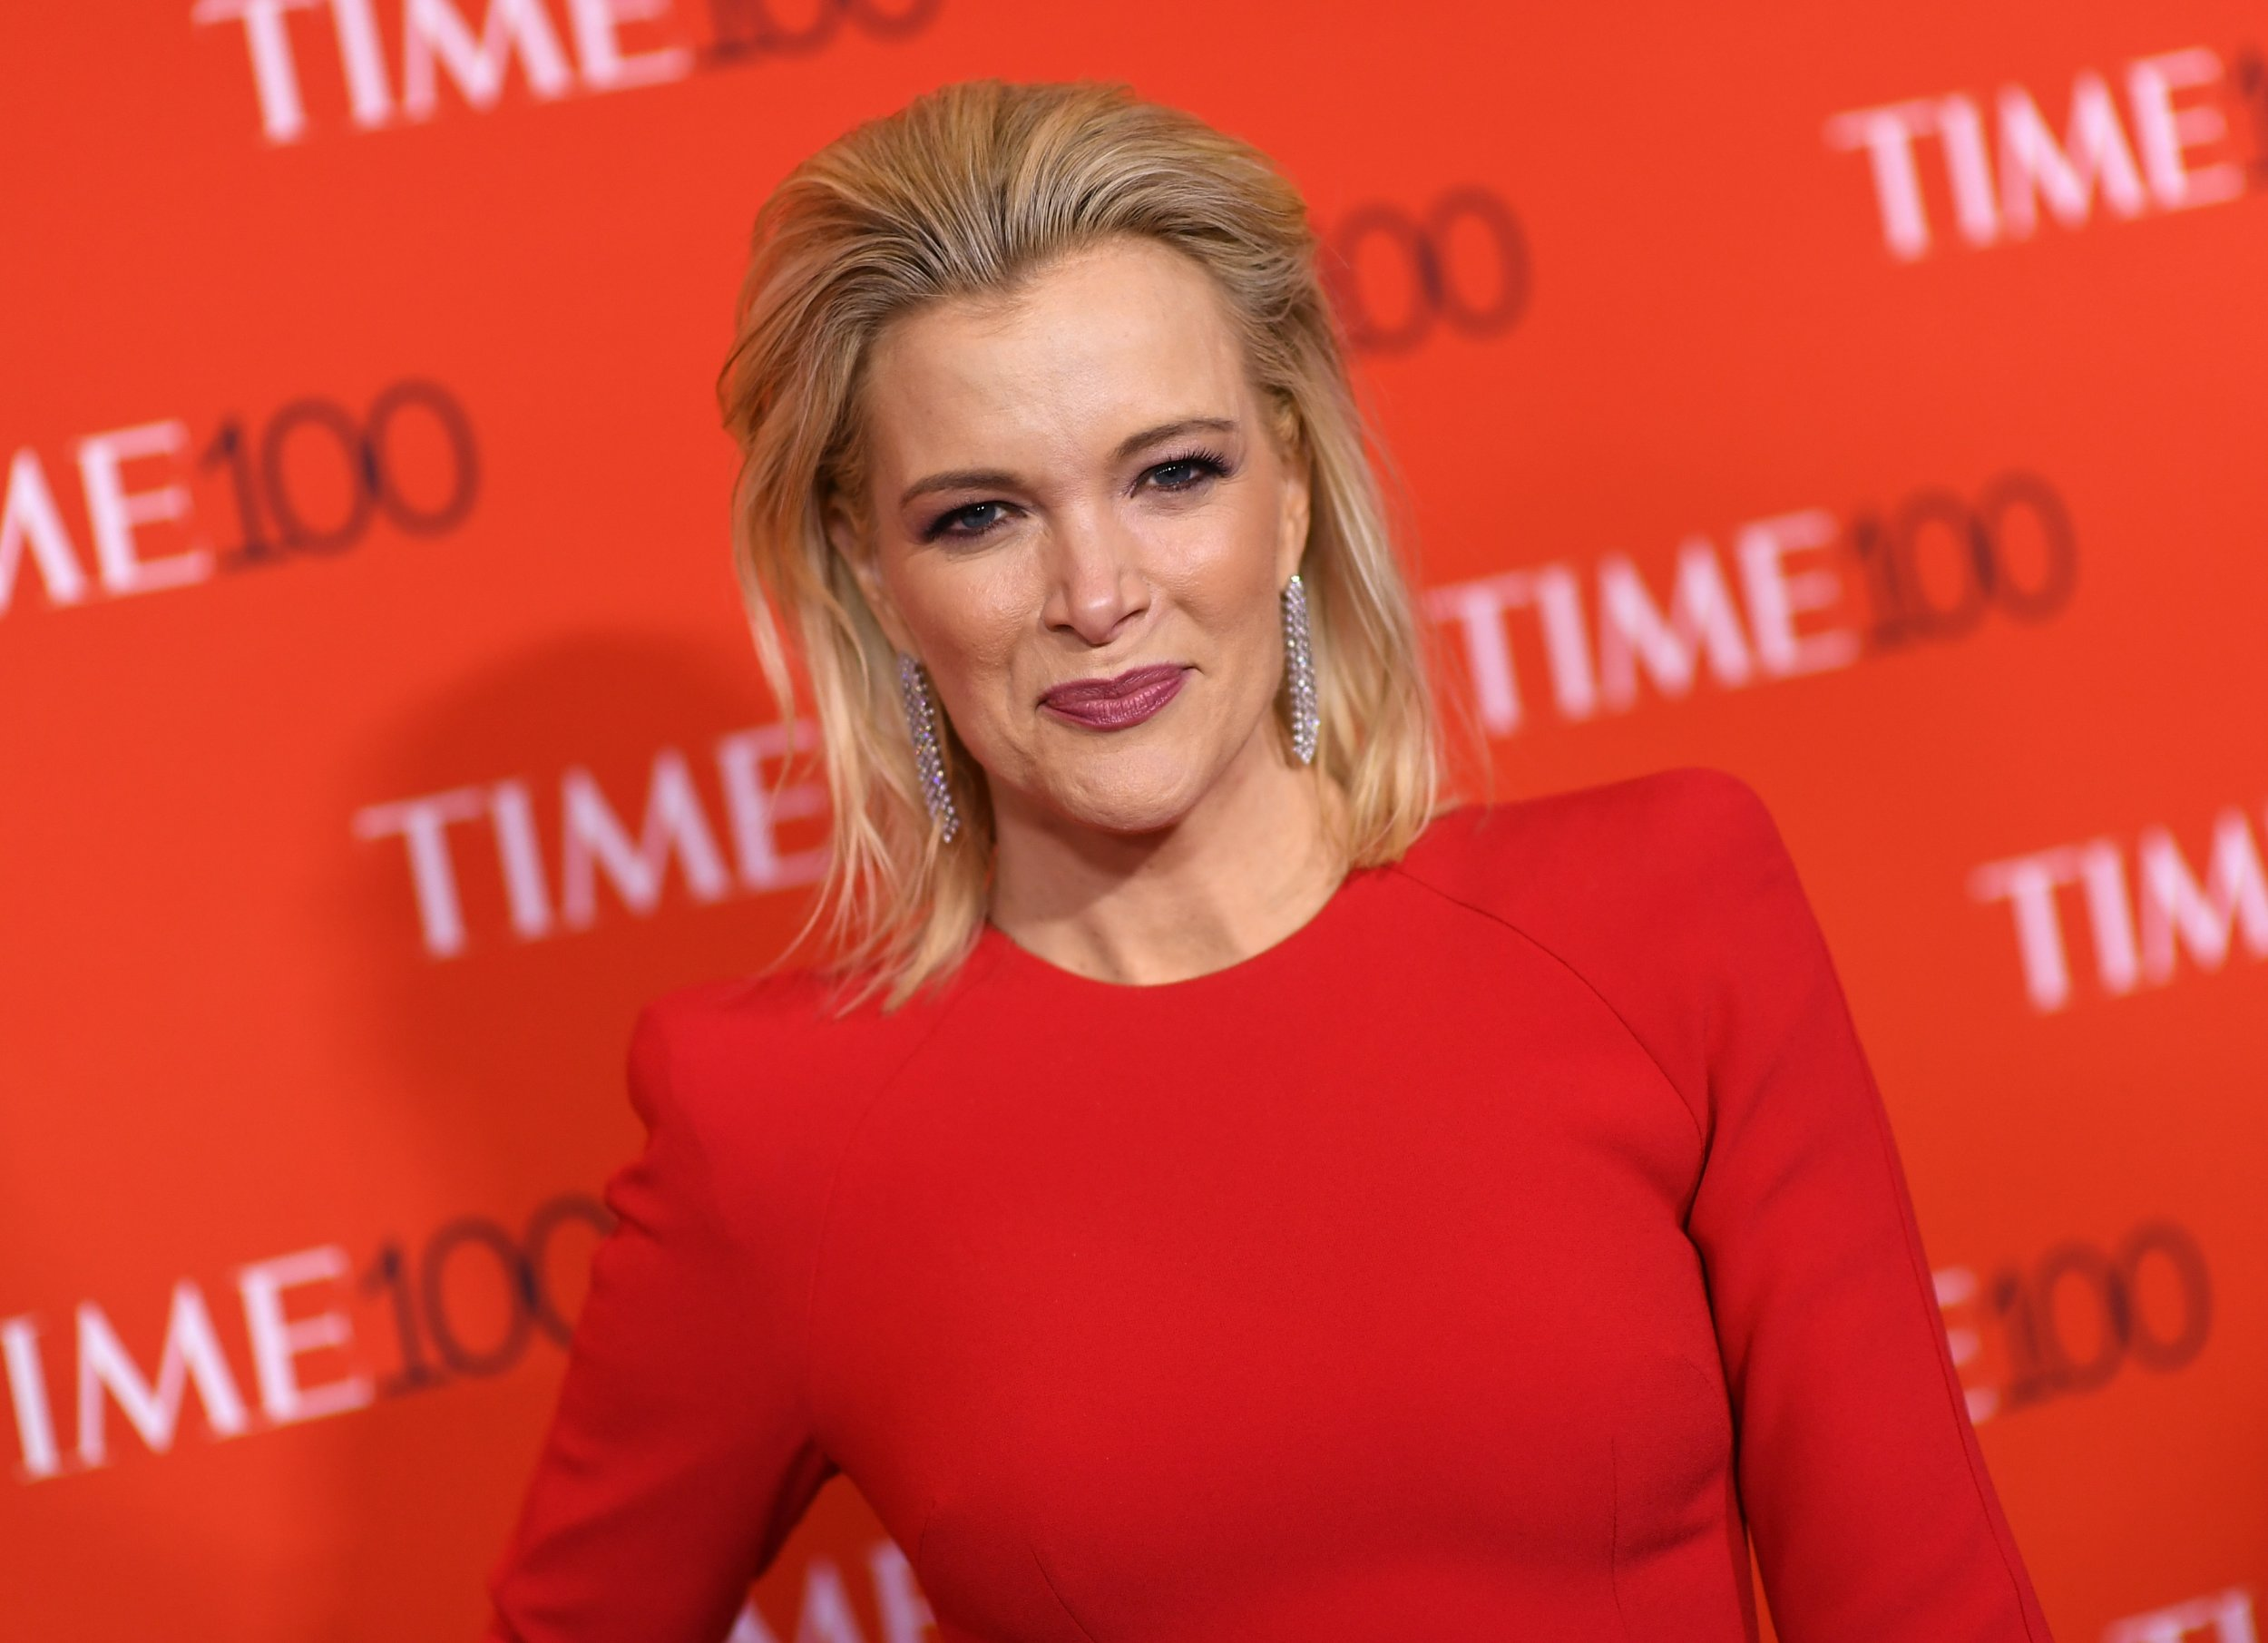 Megyn Kelly Reportedly Finalizing $30M NBC Exit